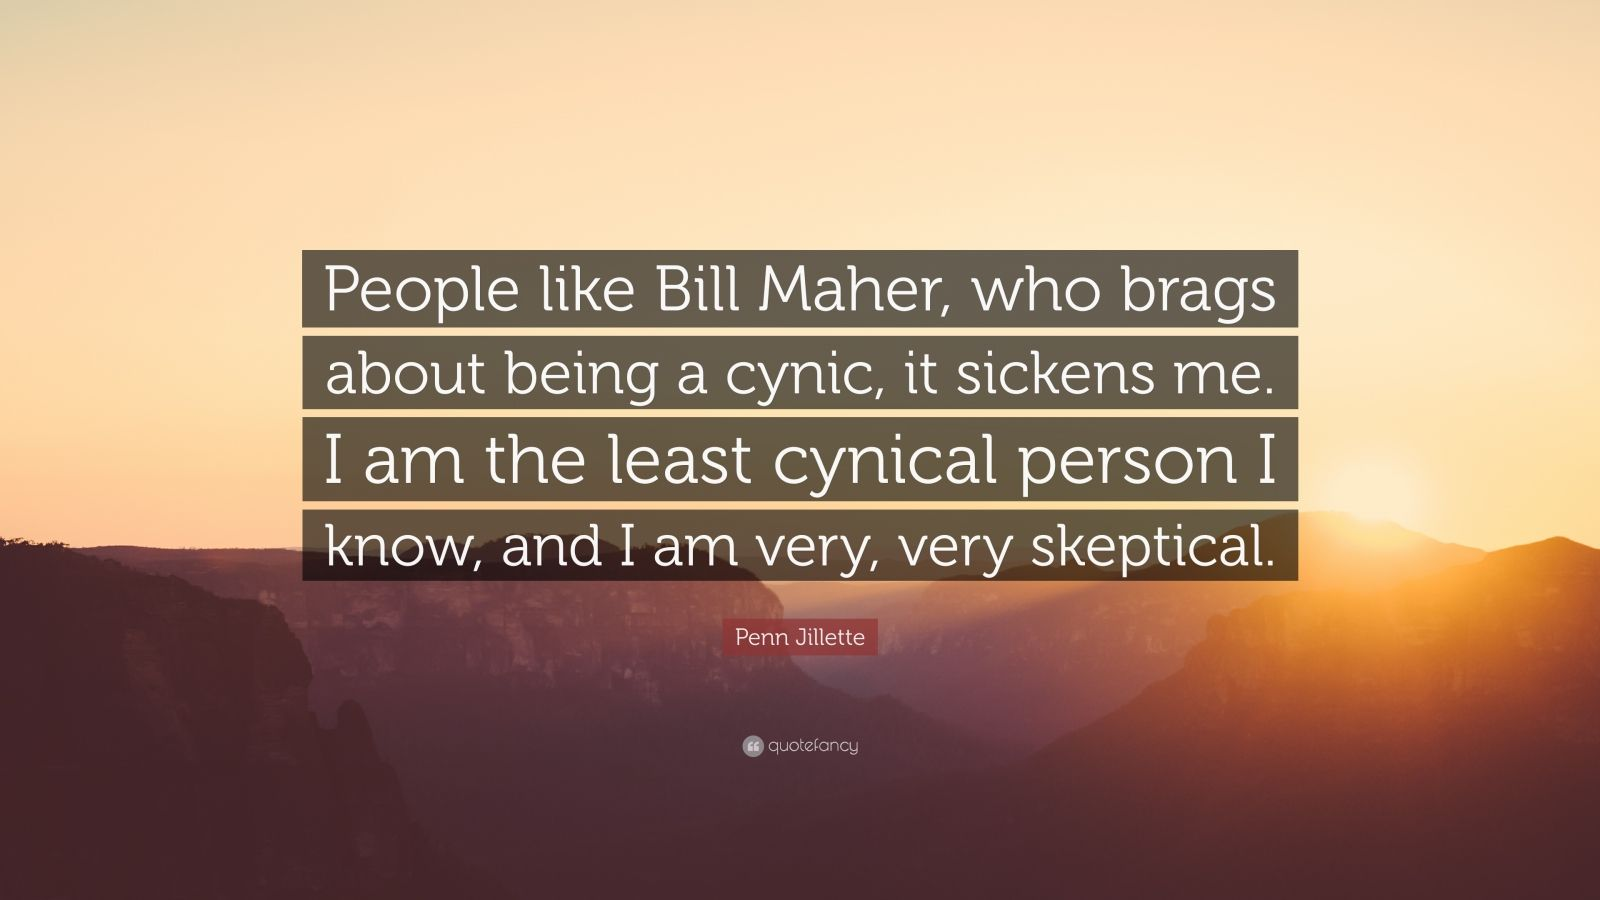 """Penn Jillette Quote: """"People like Bill Maher, who brags about being a cynic, it sickens me. I am the least cynical person I know, and I am very, very skeptical."""""""